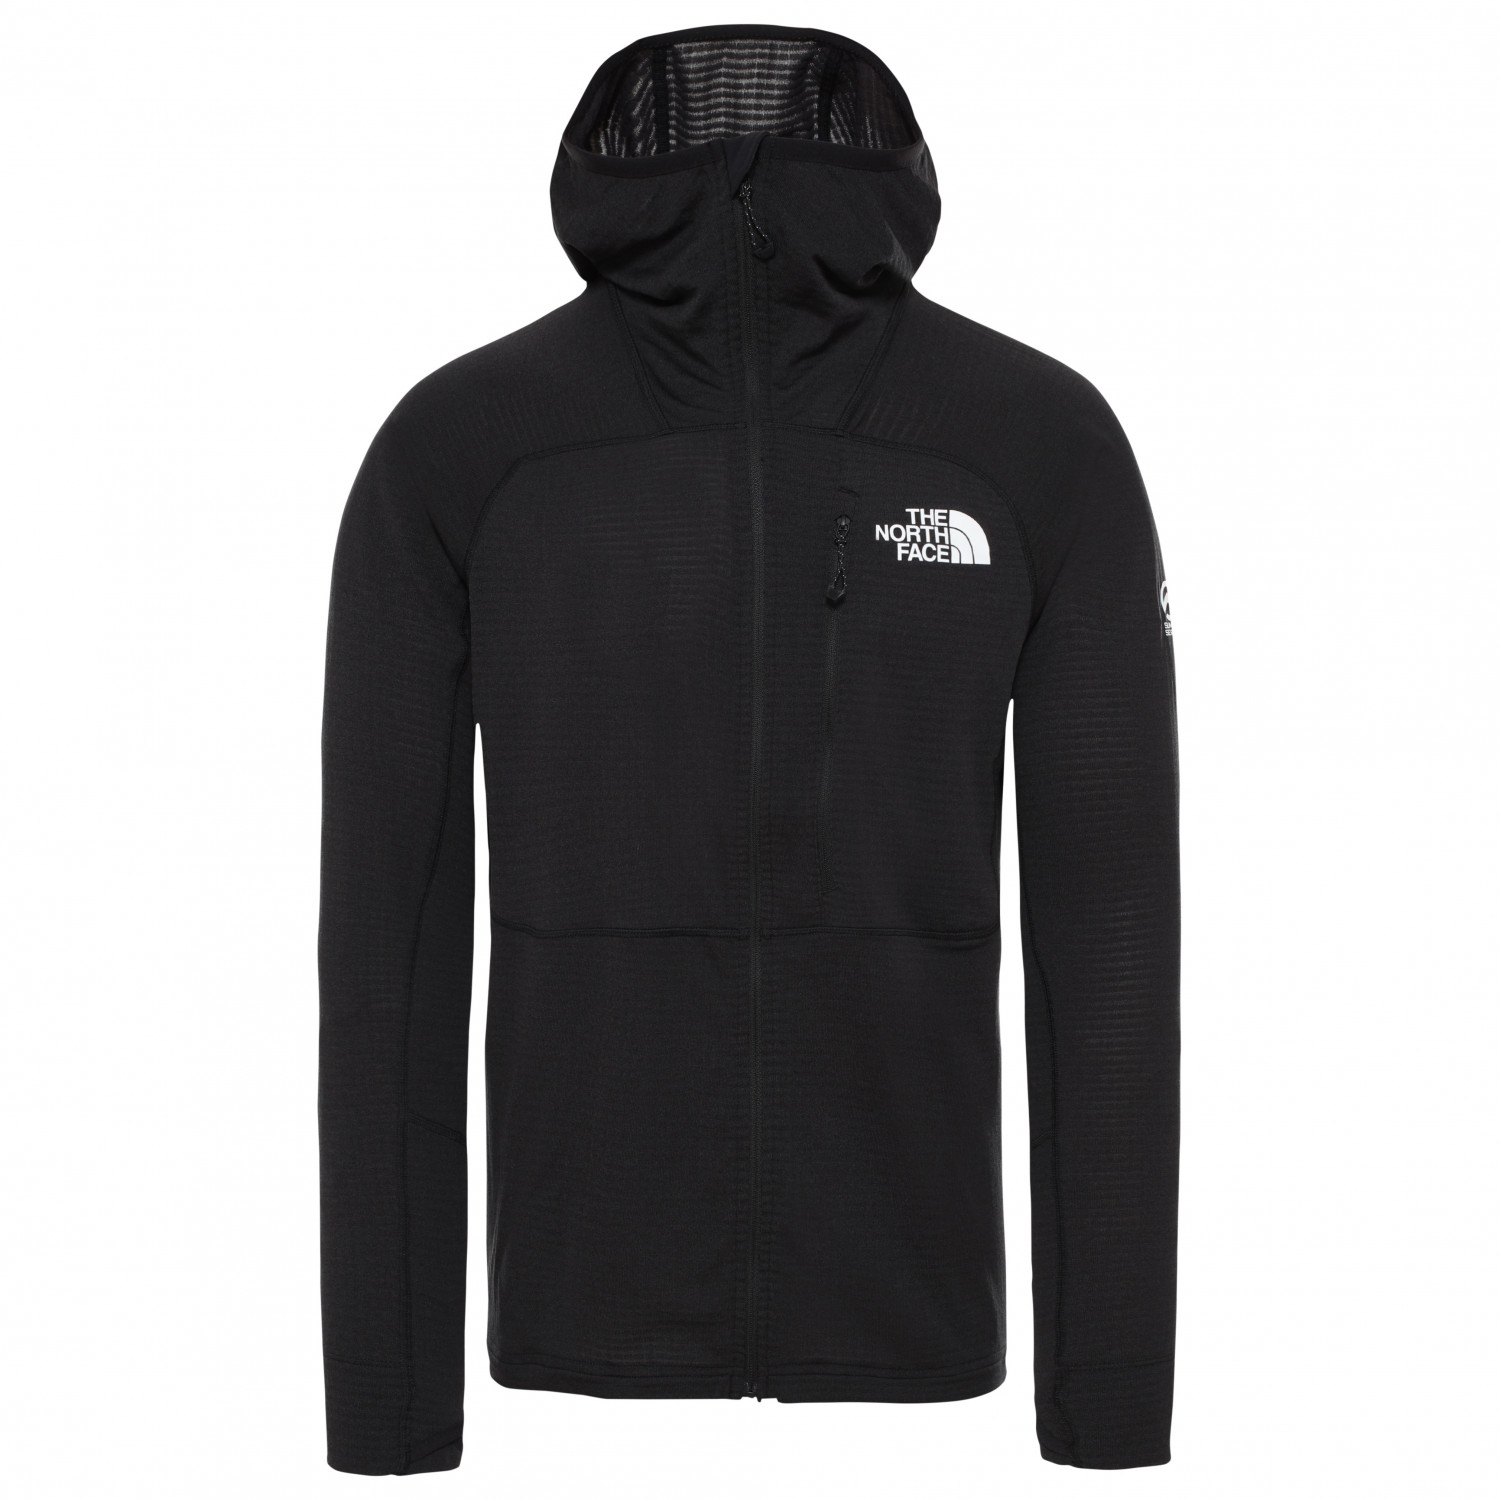 The North Face Summit L2 Power Grid LT Hoodie Giacca in pile Fiery Red | S